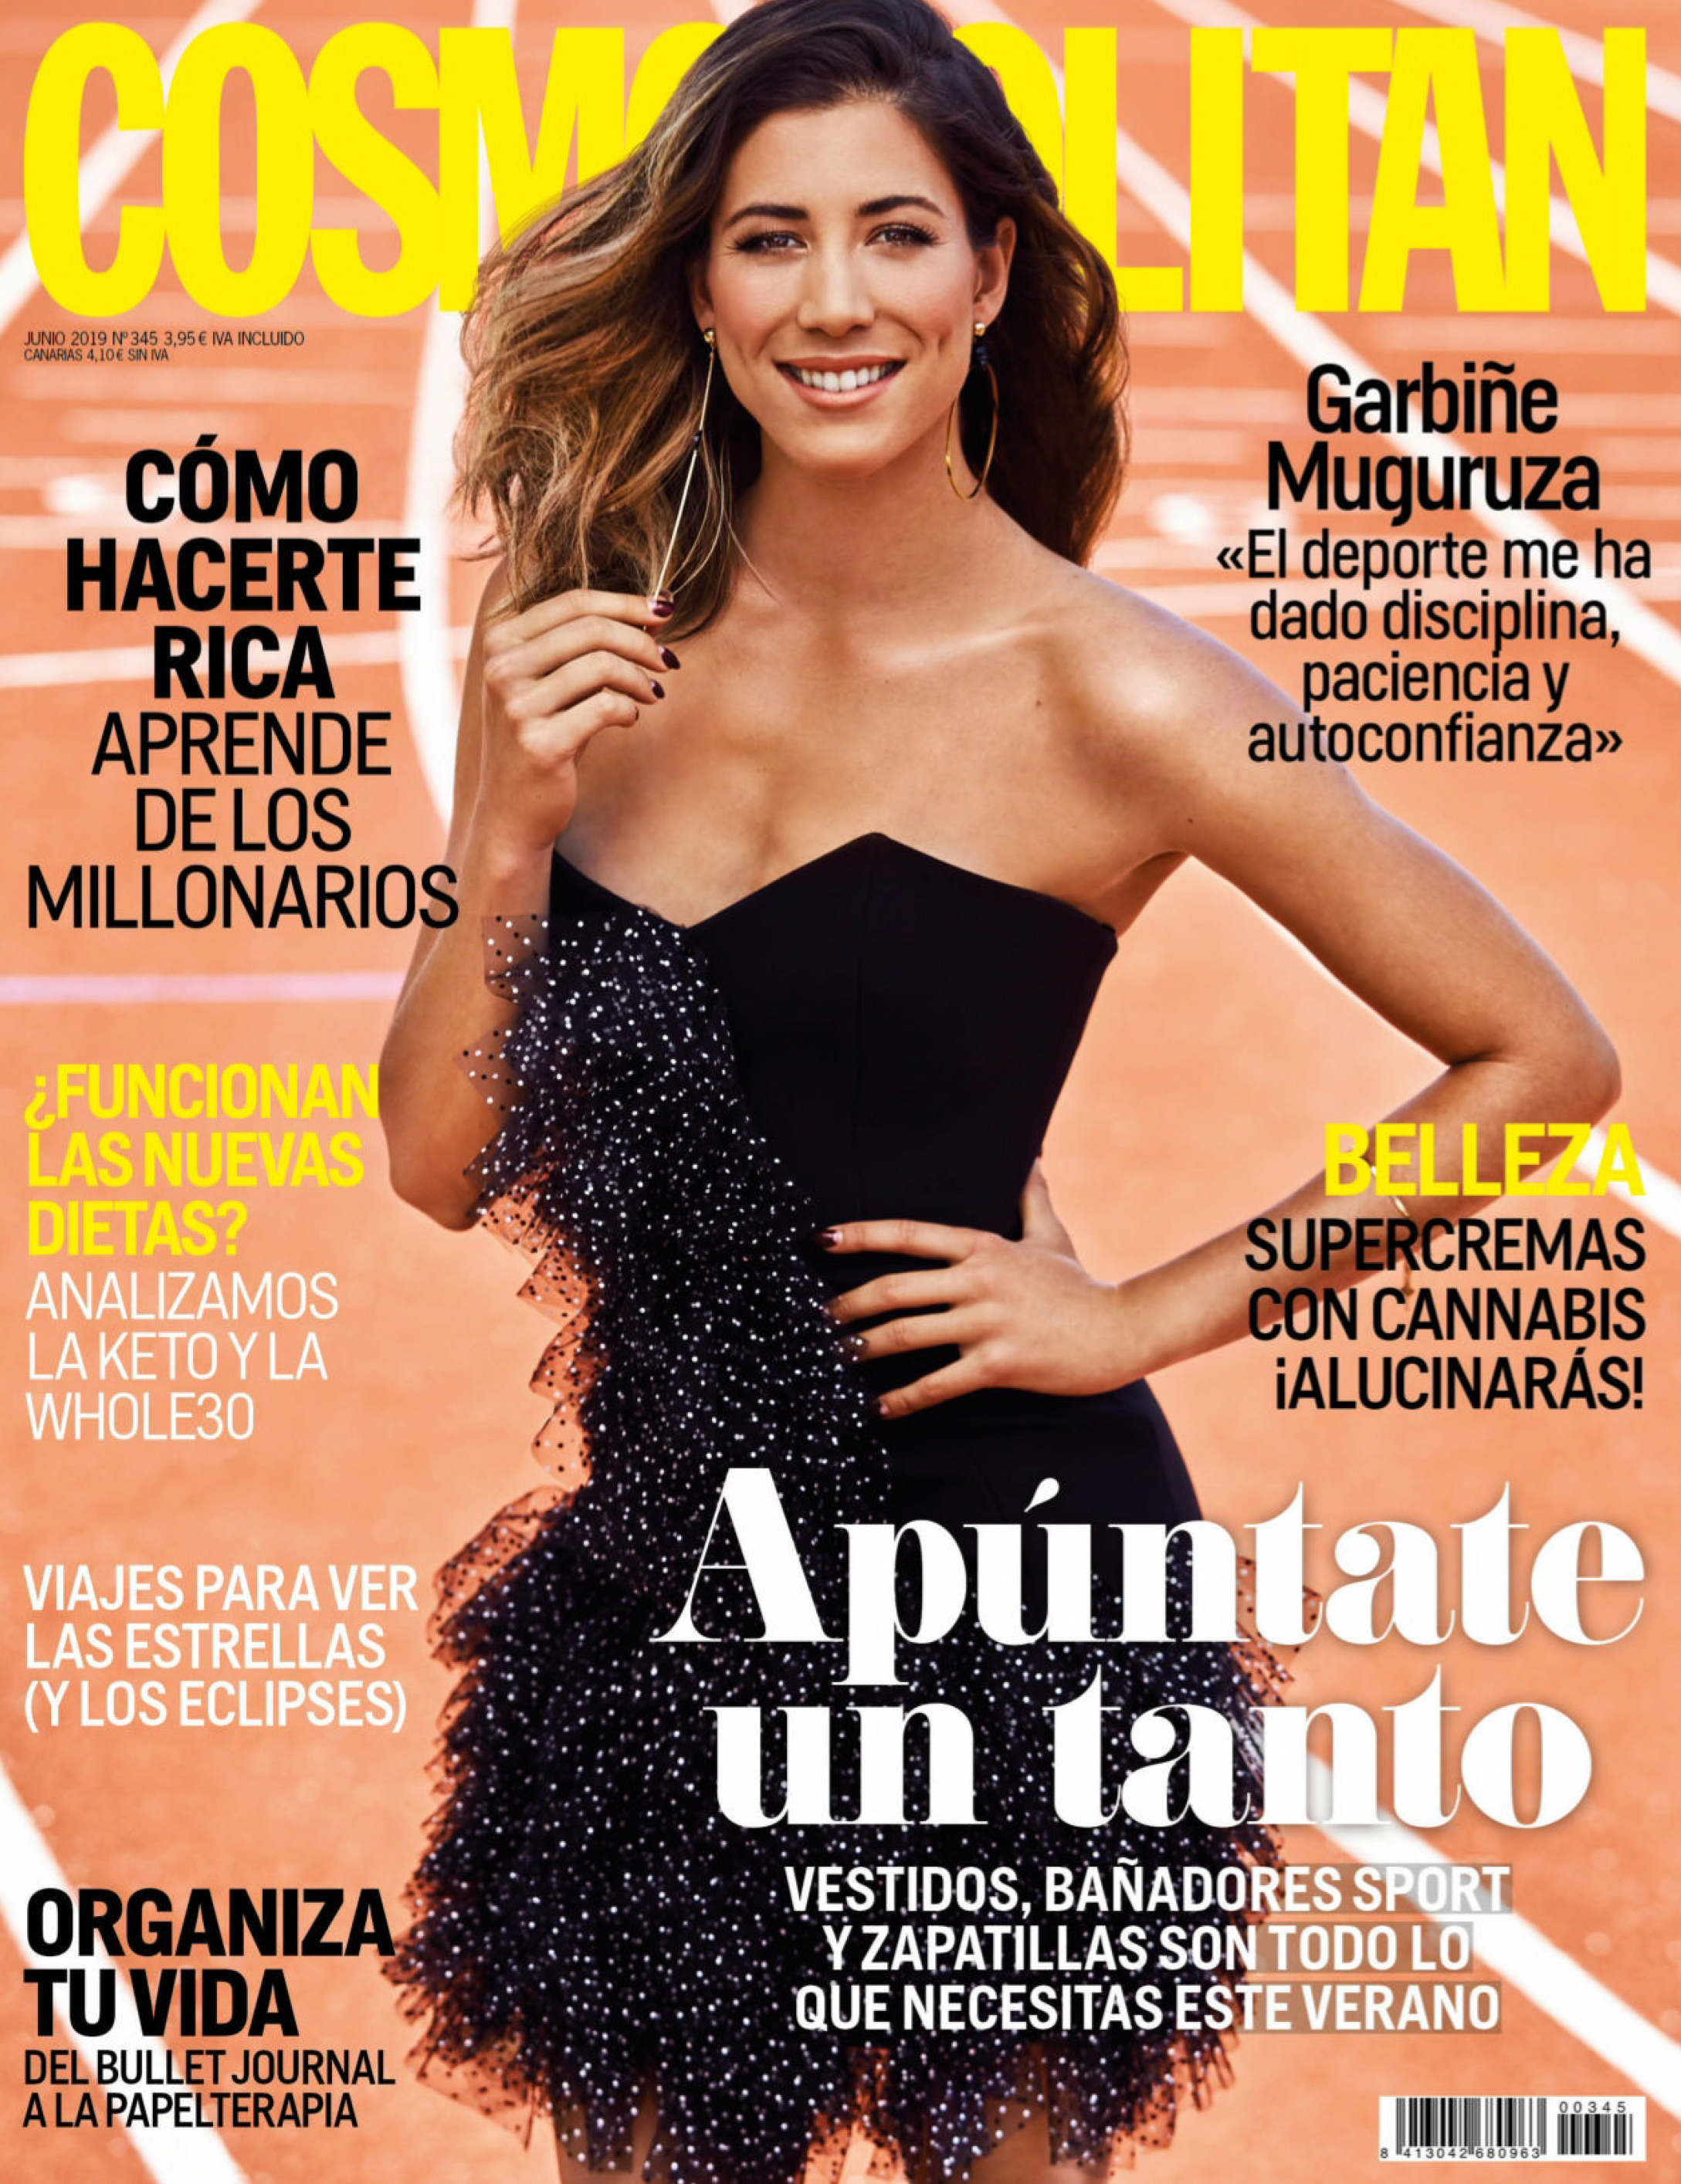 ANONYME_COSMOPOLITAN_01_06_19_COVER.jpg